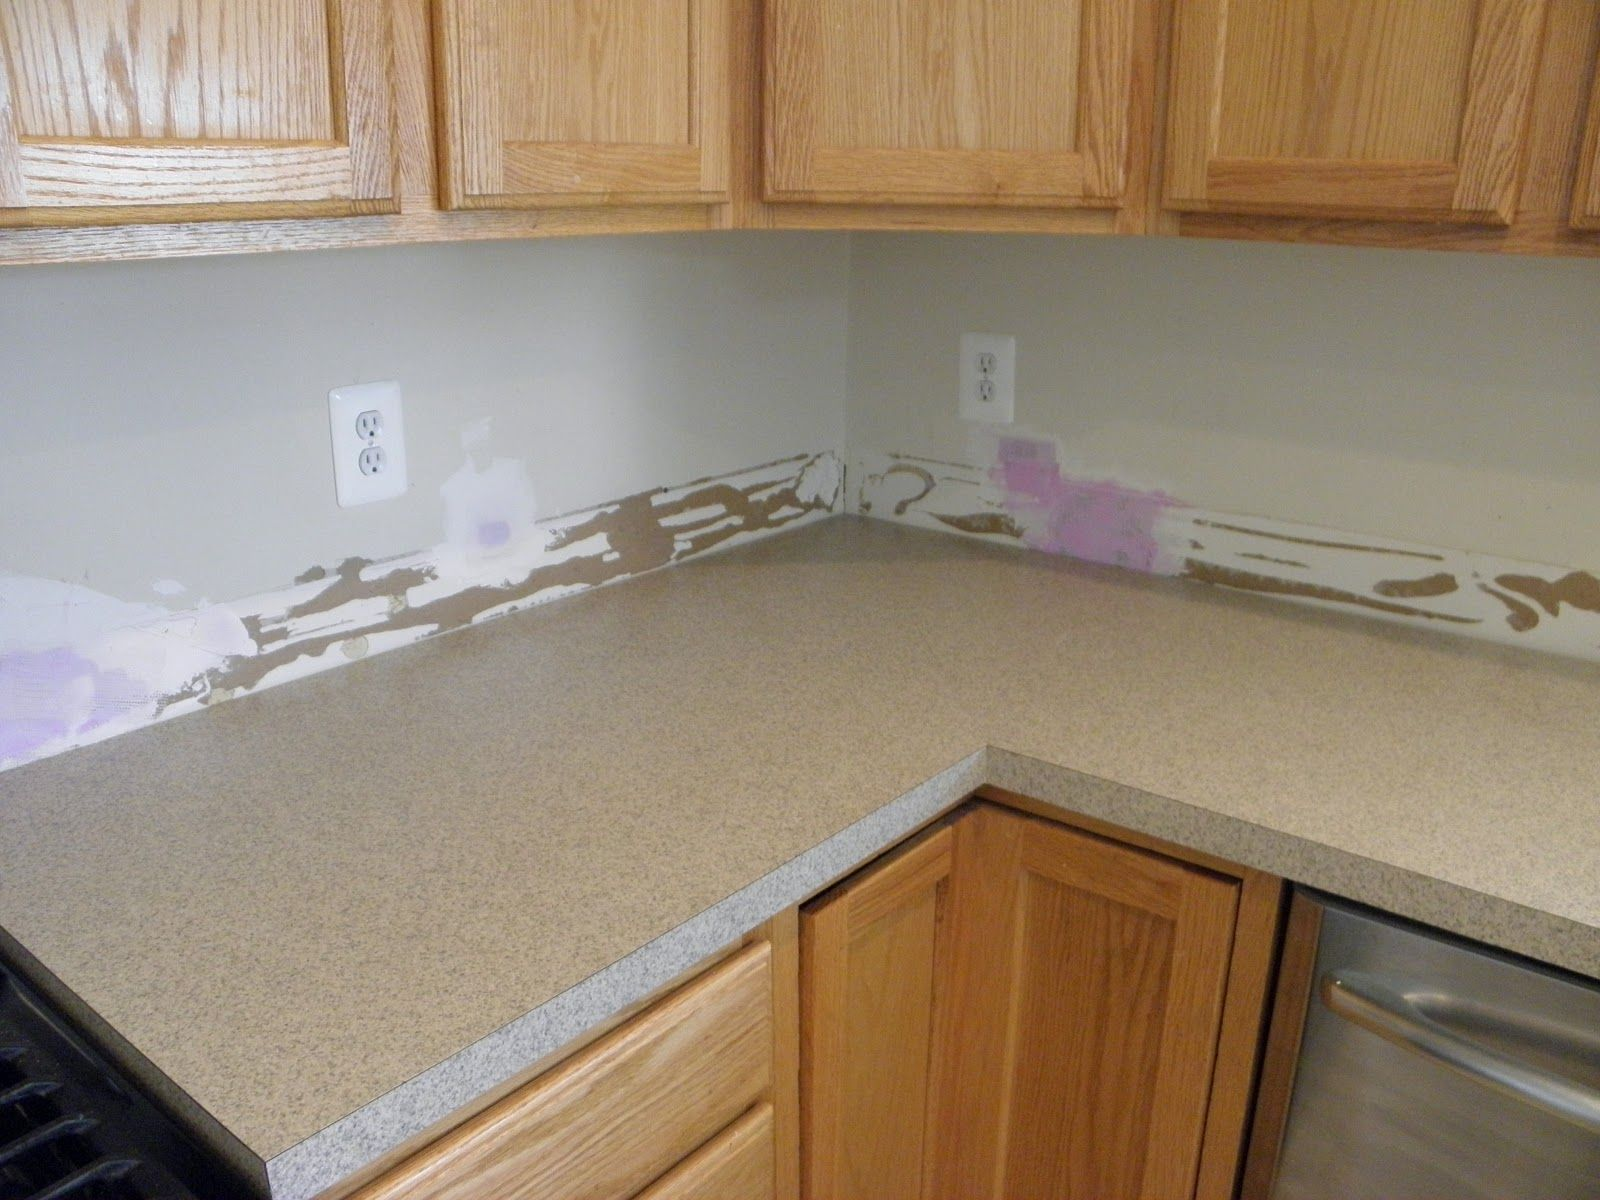 Laminate Kitchen Backsplash Formica Concrete Stone Kitchen Cosmetic Changes